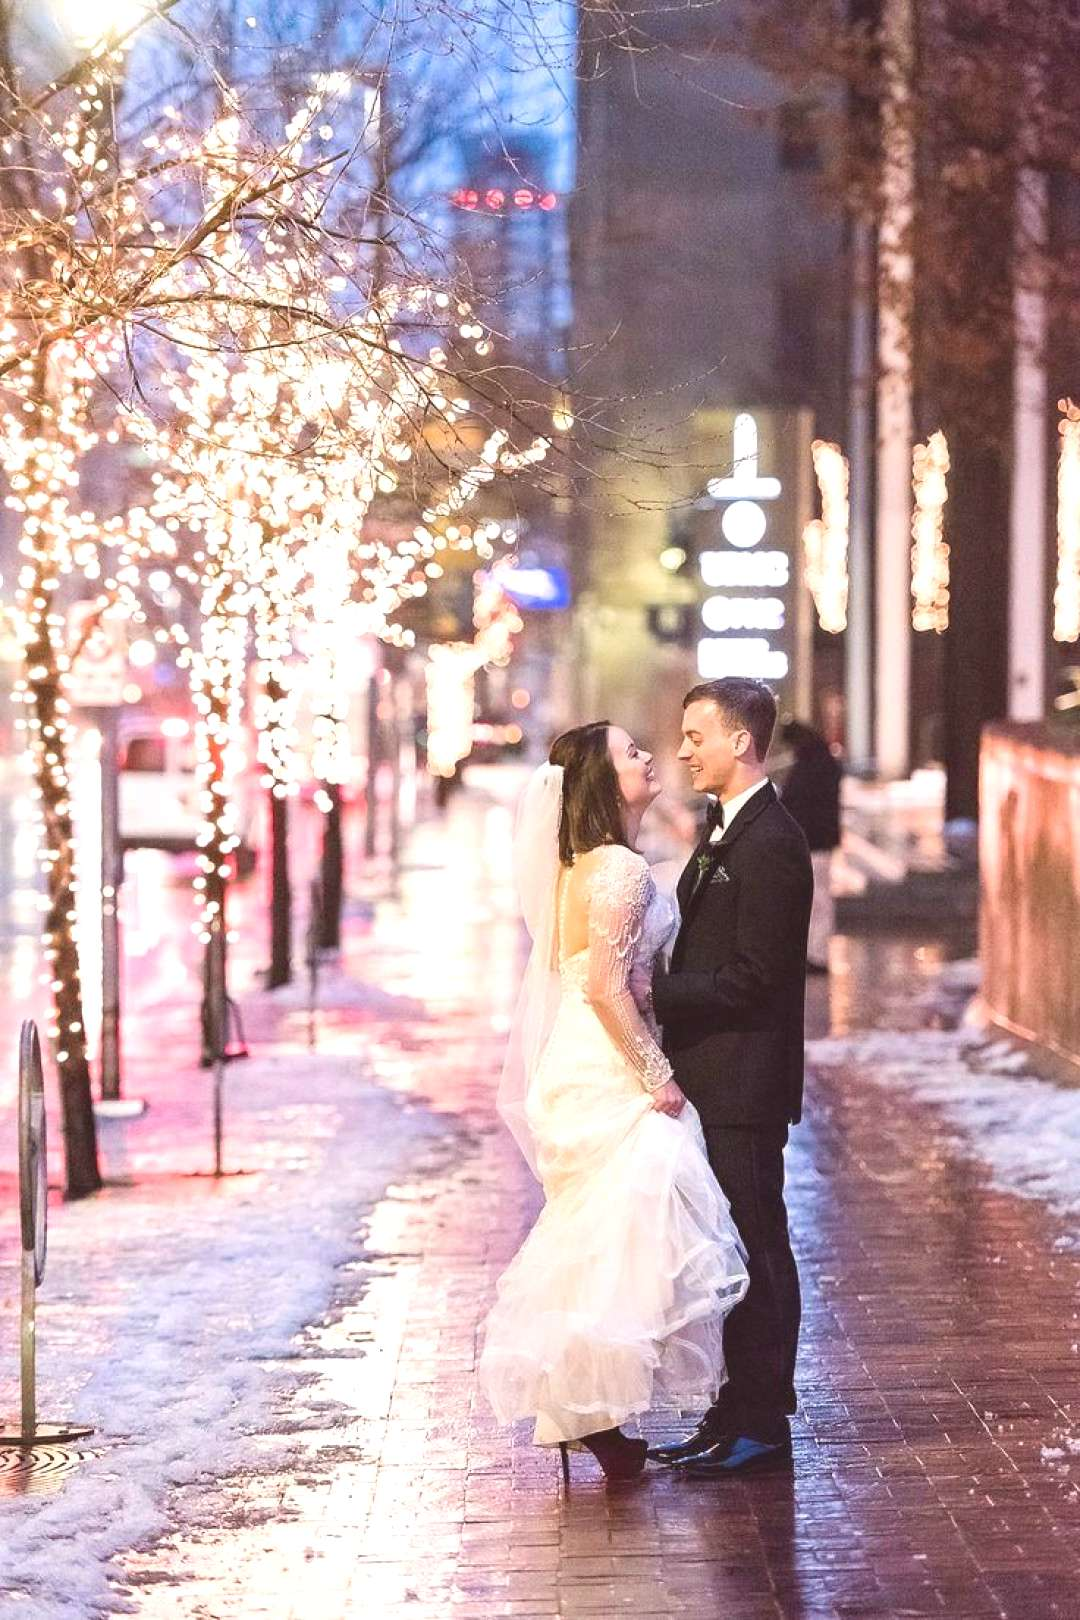 Downtown pittsburgh winter wedding night photo by Leeann Marie Photography. See more wedding ins